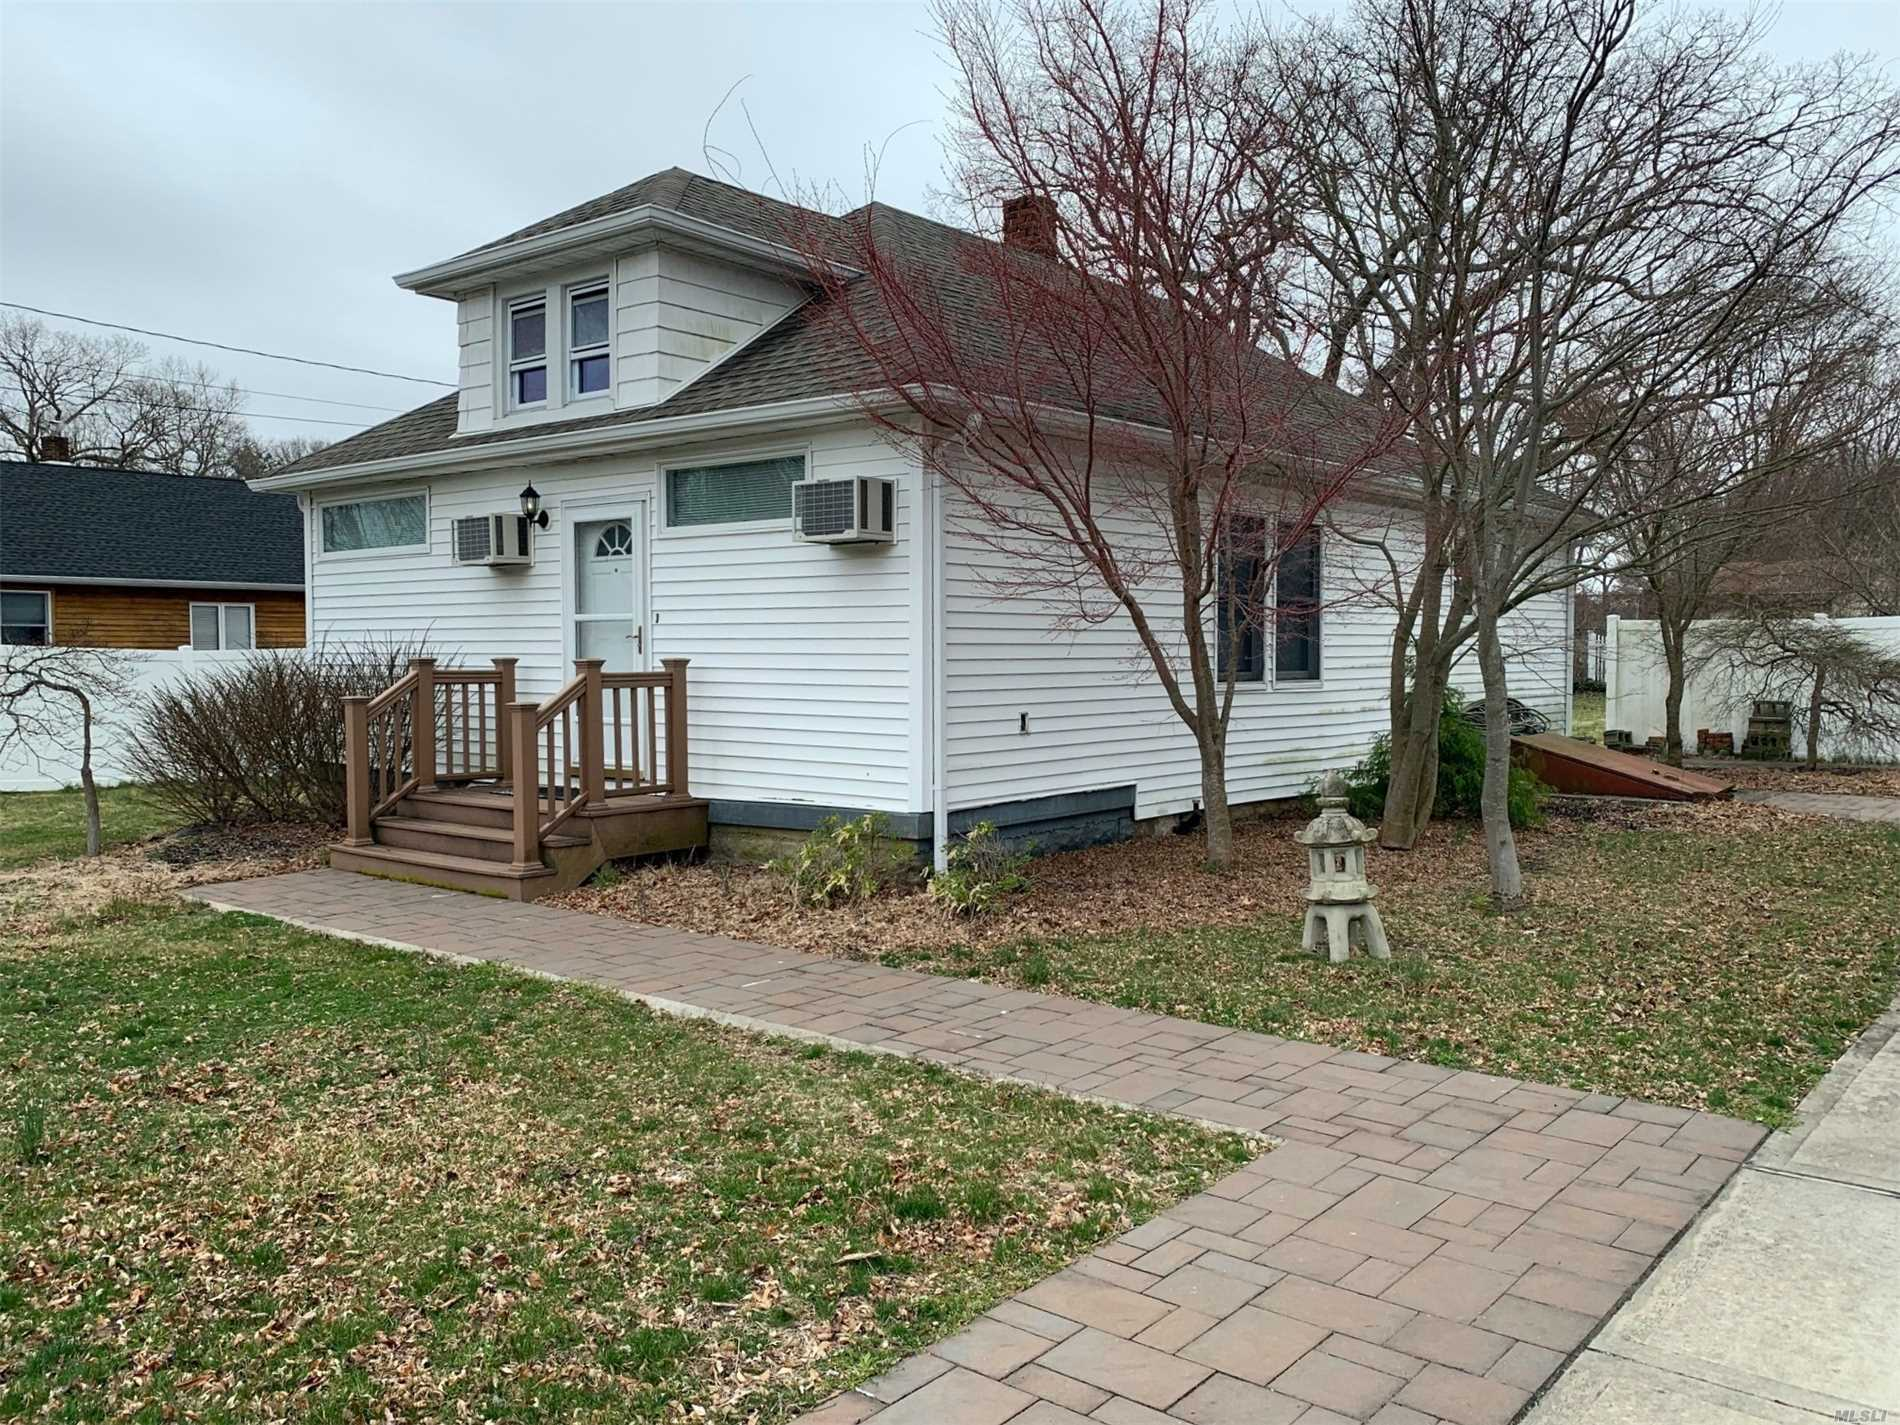 Bohemia Ranch Renovated Lr/Dr, Kitchen, 2 Bedrooms, Full Bath, Large Attic, Full Basement, Garage and a Accessory Building (656 sq ft) all on a 100 X 265 lot Zoned GST district many possibilities. Updated Roof, Siding, Anderson Windows,  Electric, Heating, Bath, Kitchen Cabinets, Appliances.